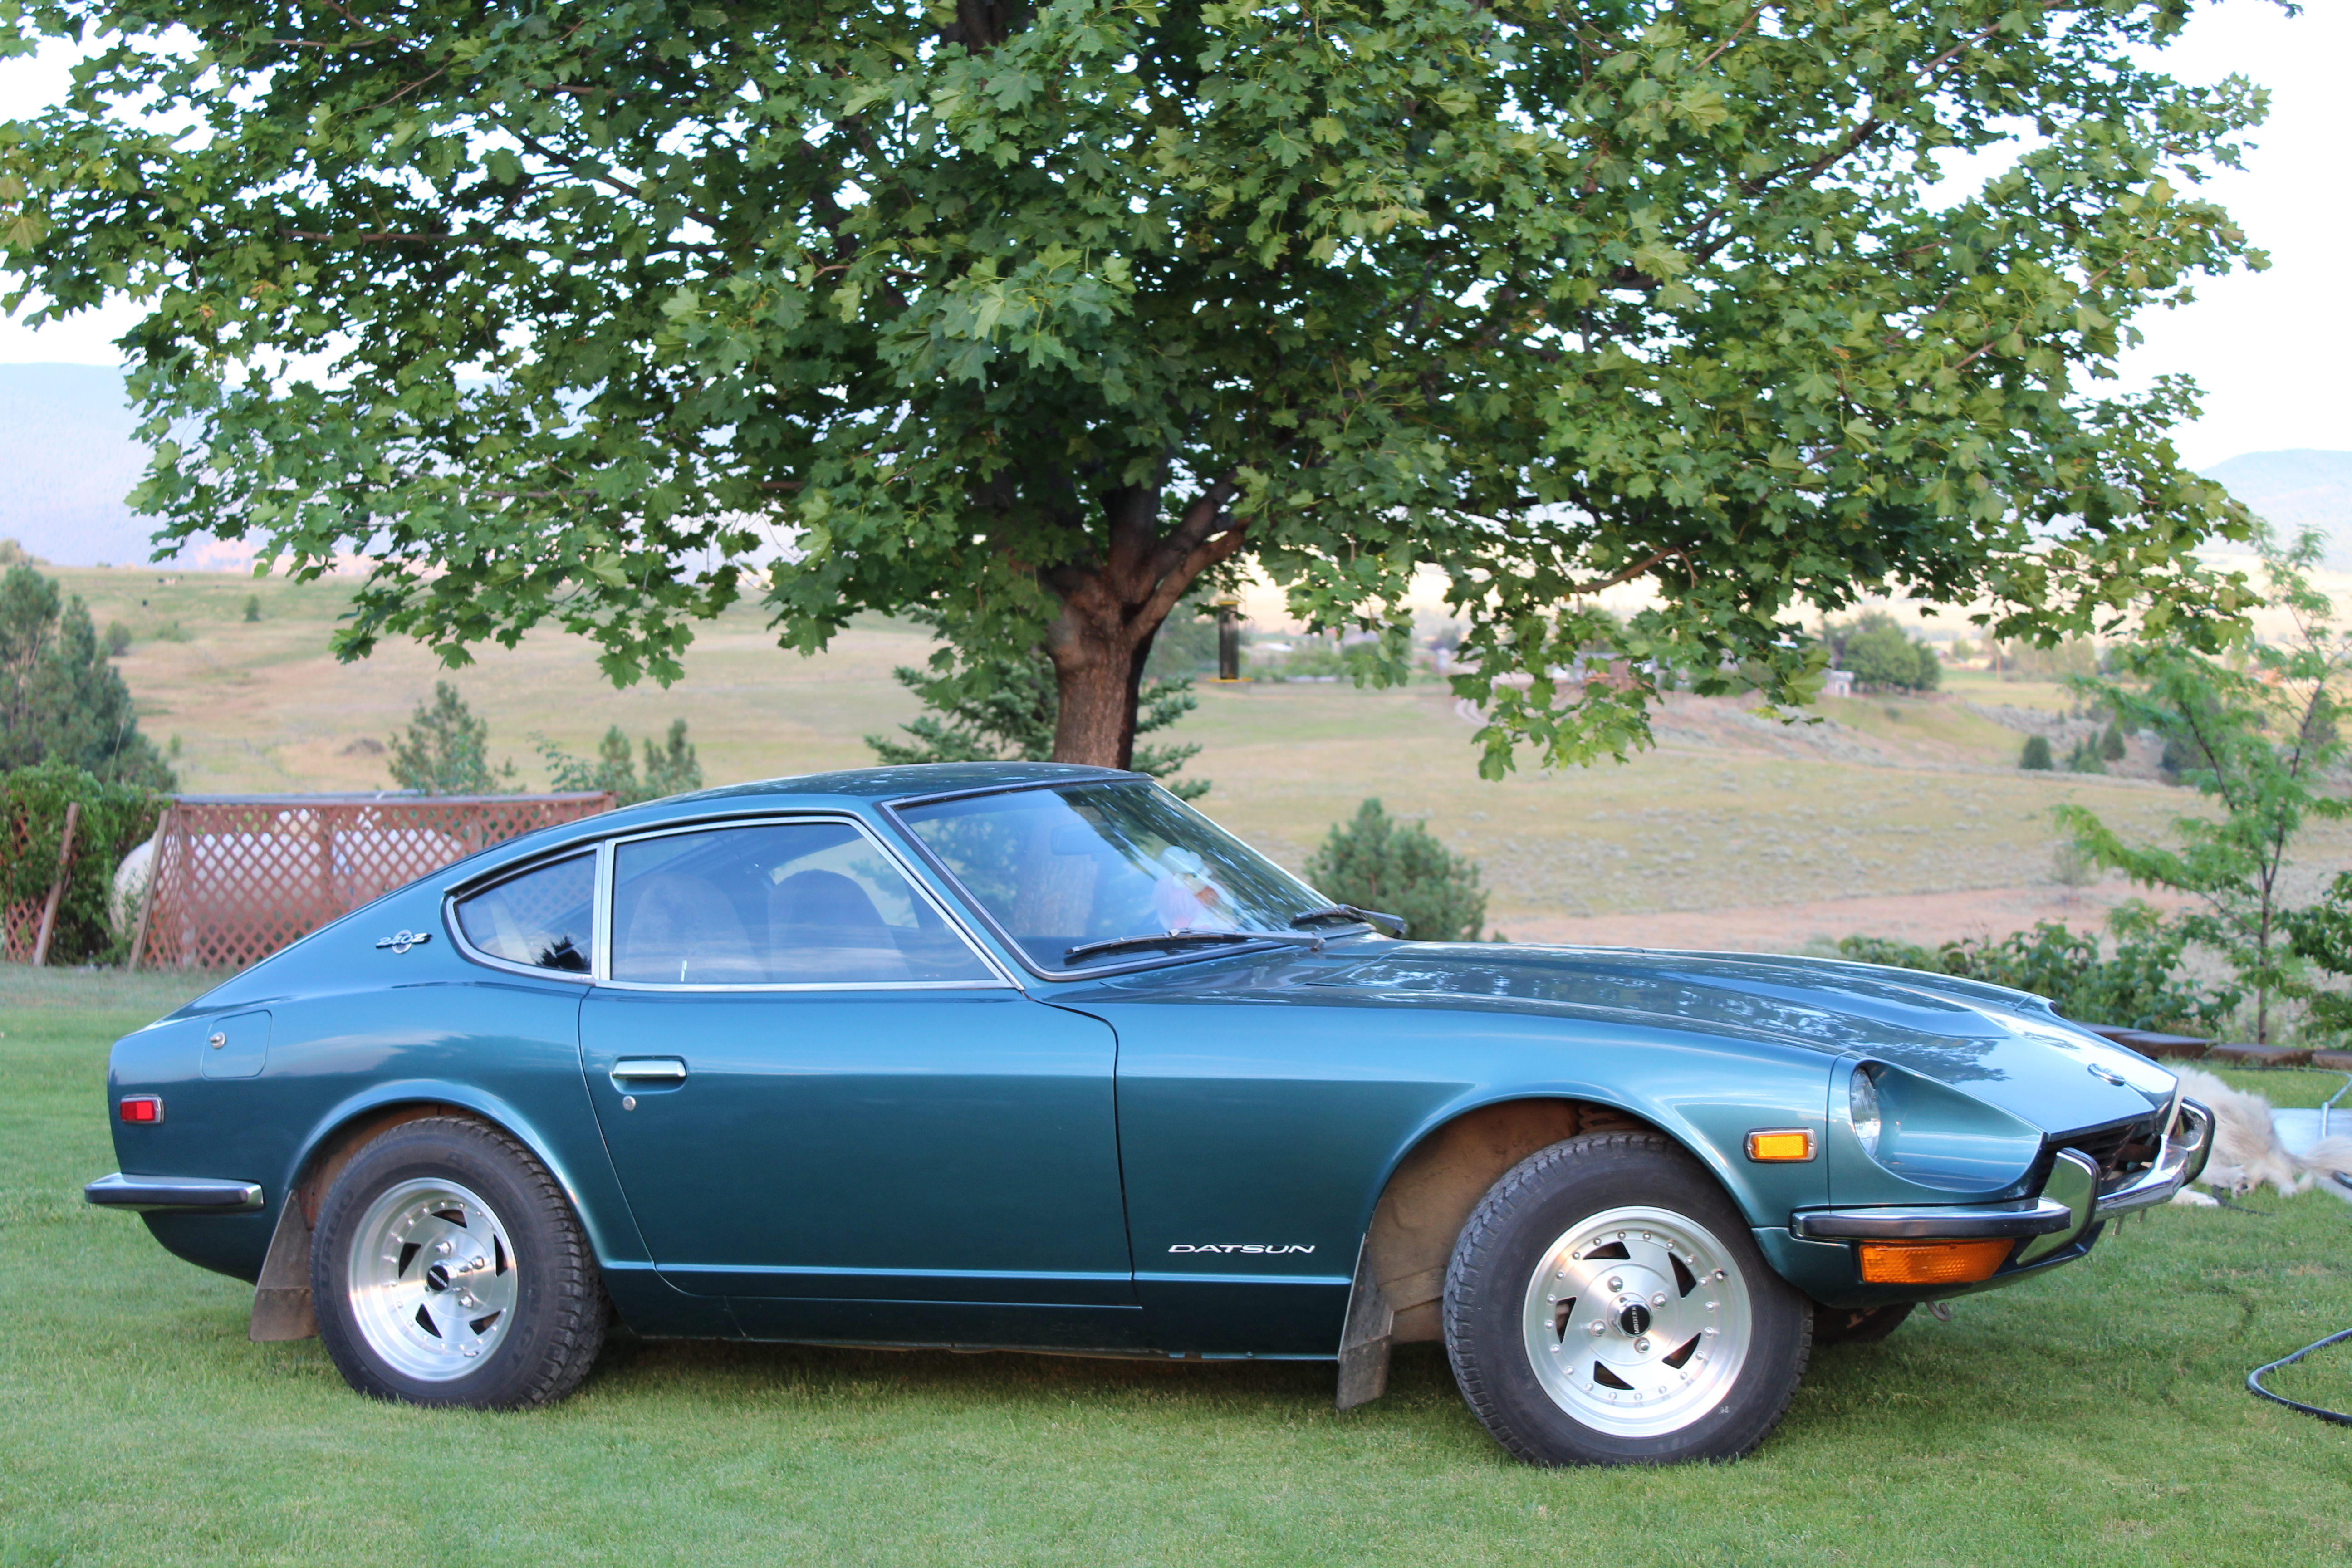 70240z For sale, 45 years in family, is on Montana ...